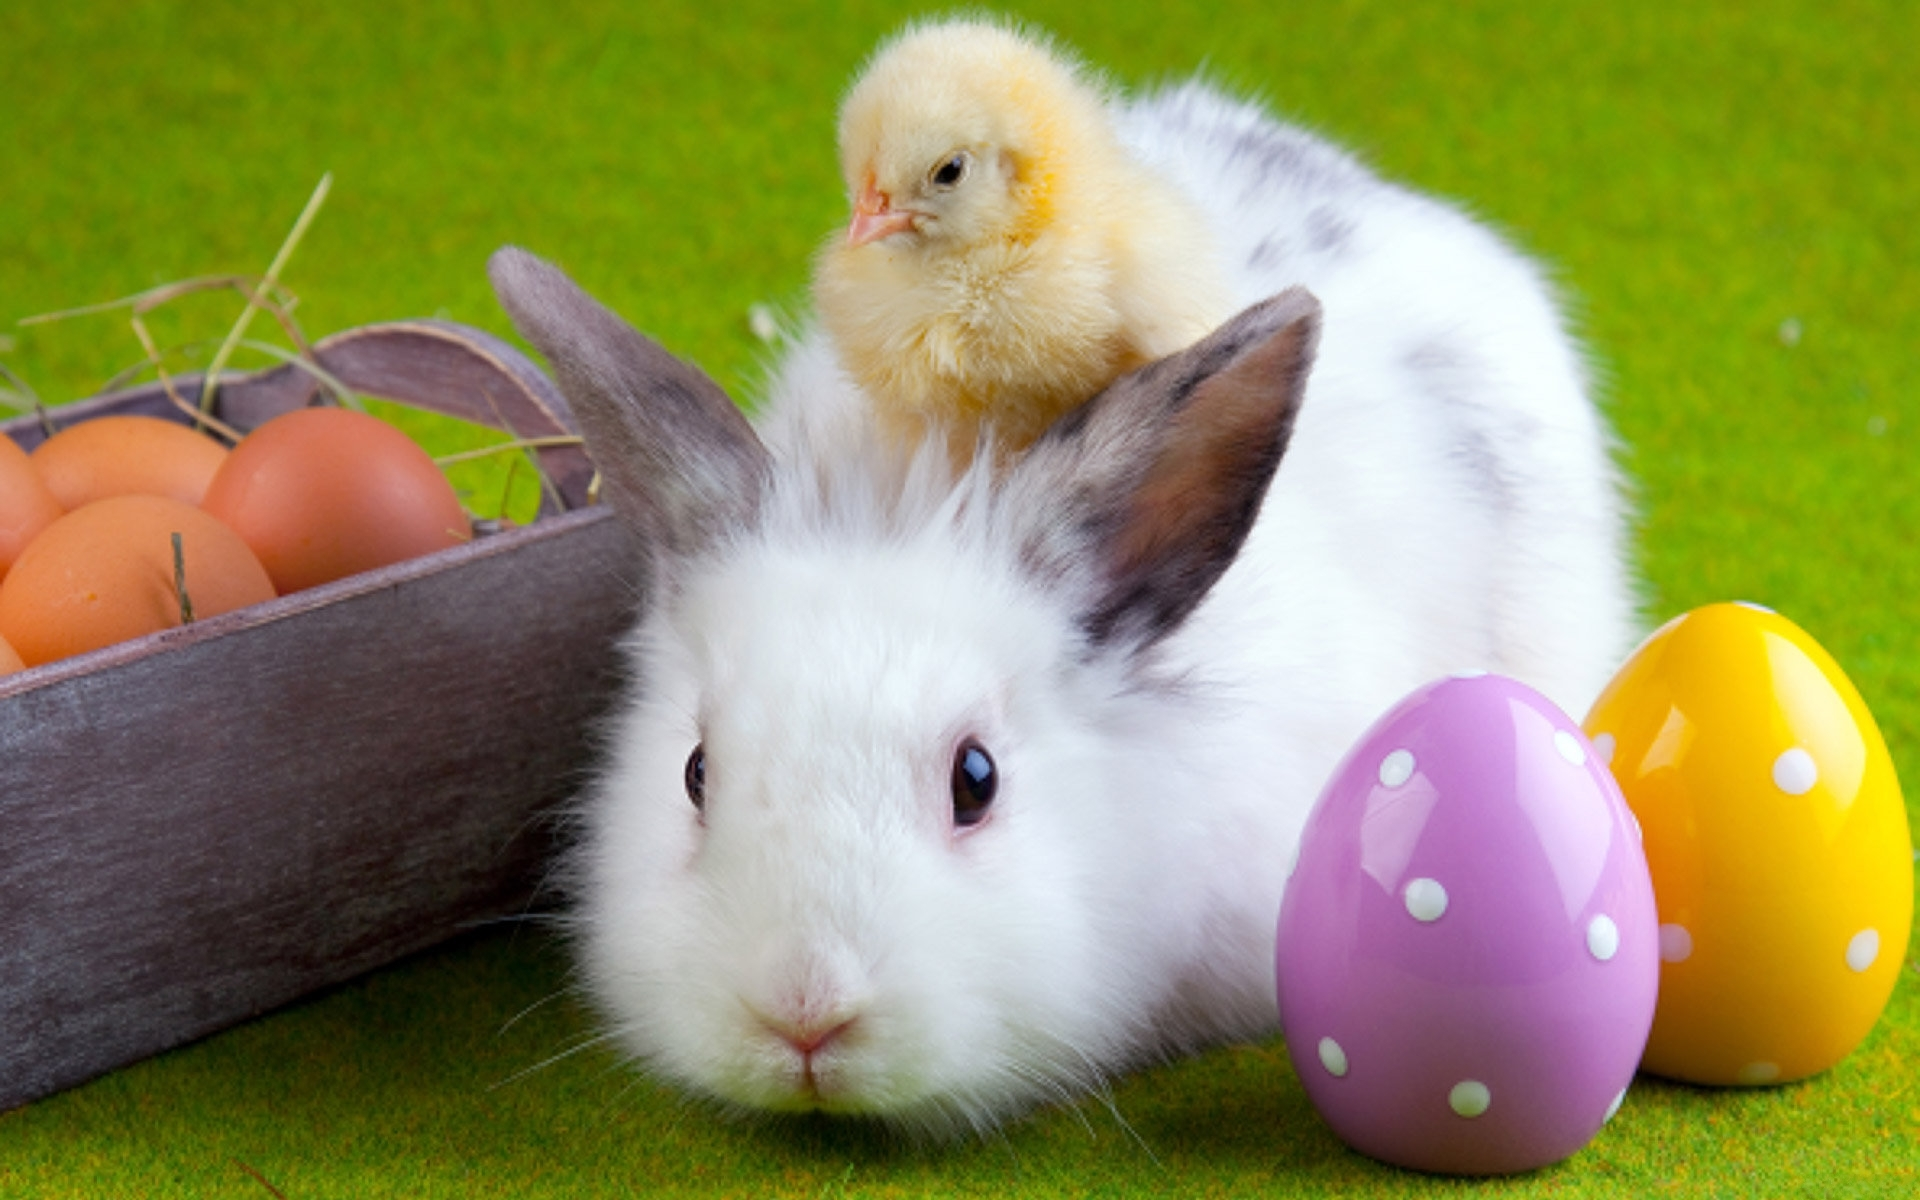 22888 download wallpaper Animals, Birds, Rabbits, Chicks screensavers and pictures for free